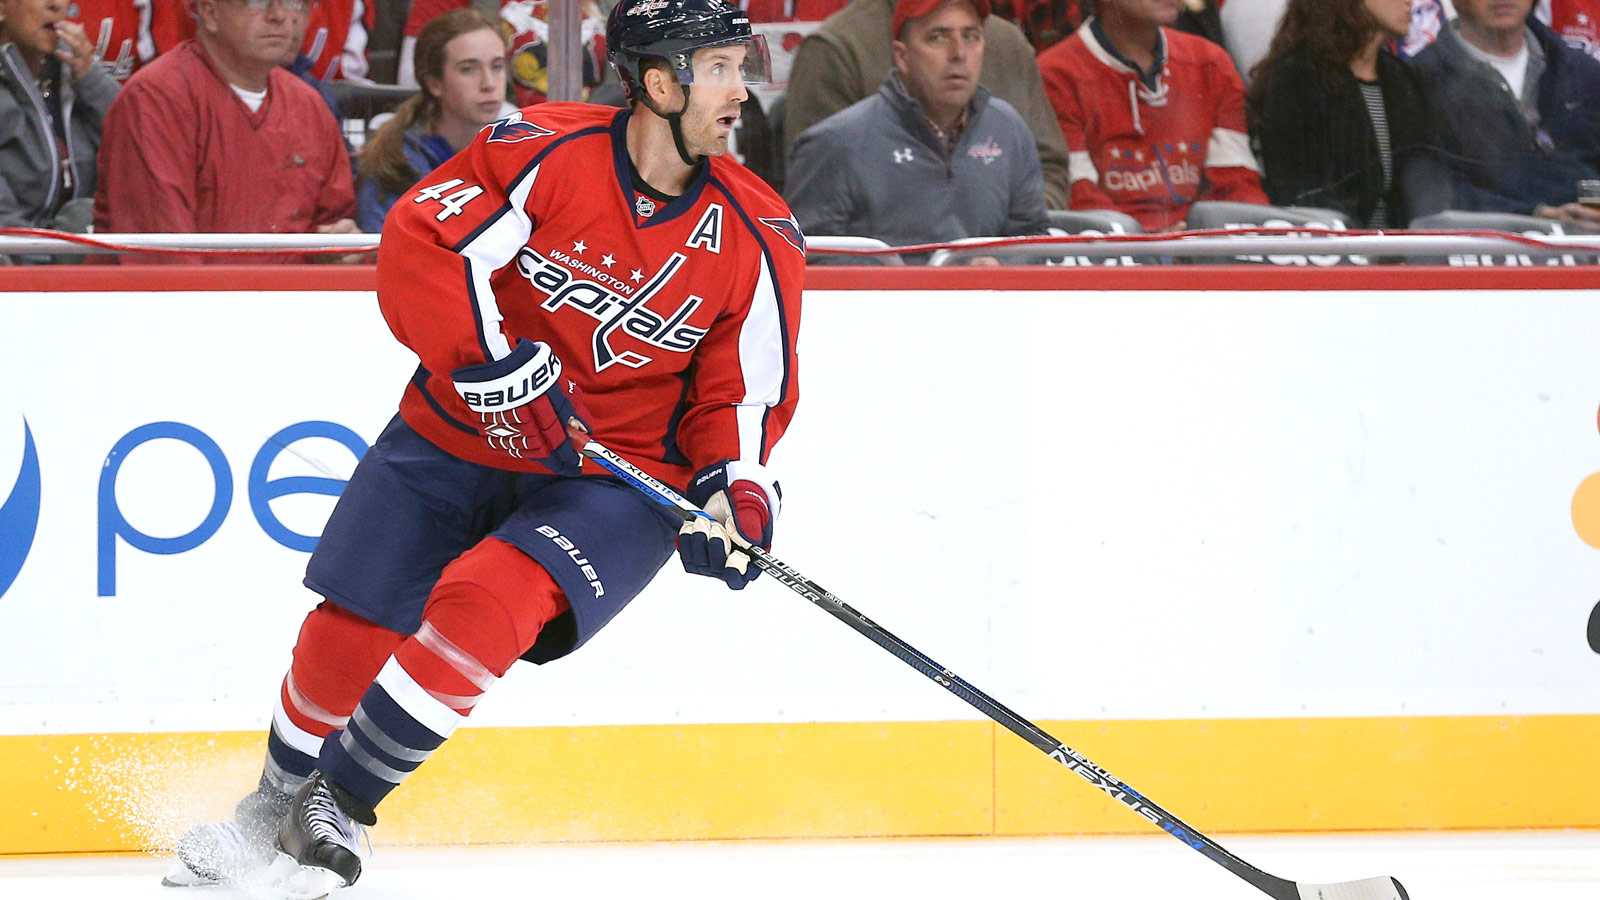 Brooks Orpik practices with Capitals for first time since December